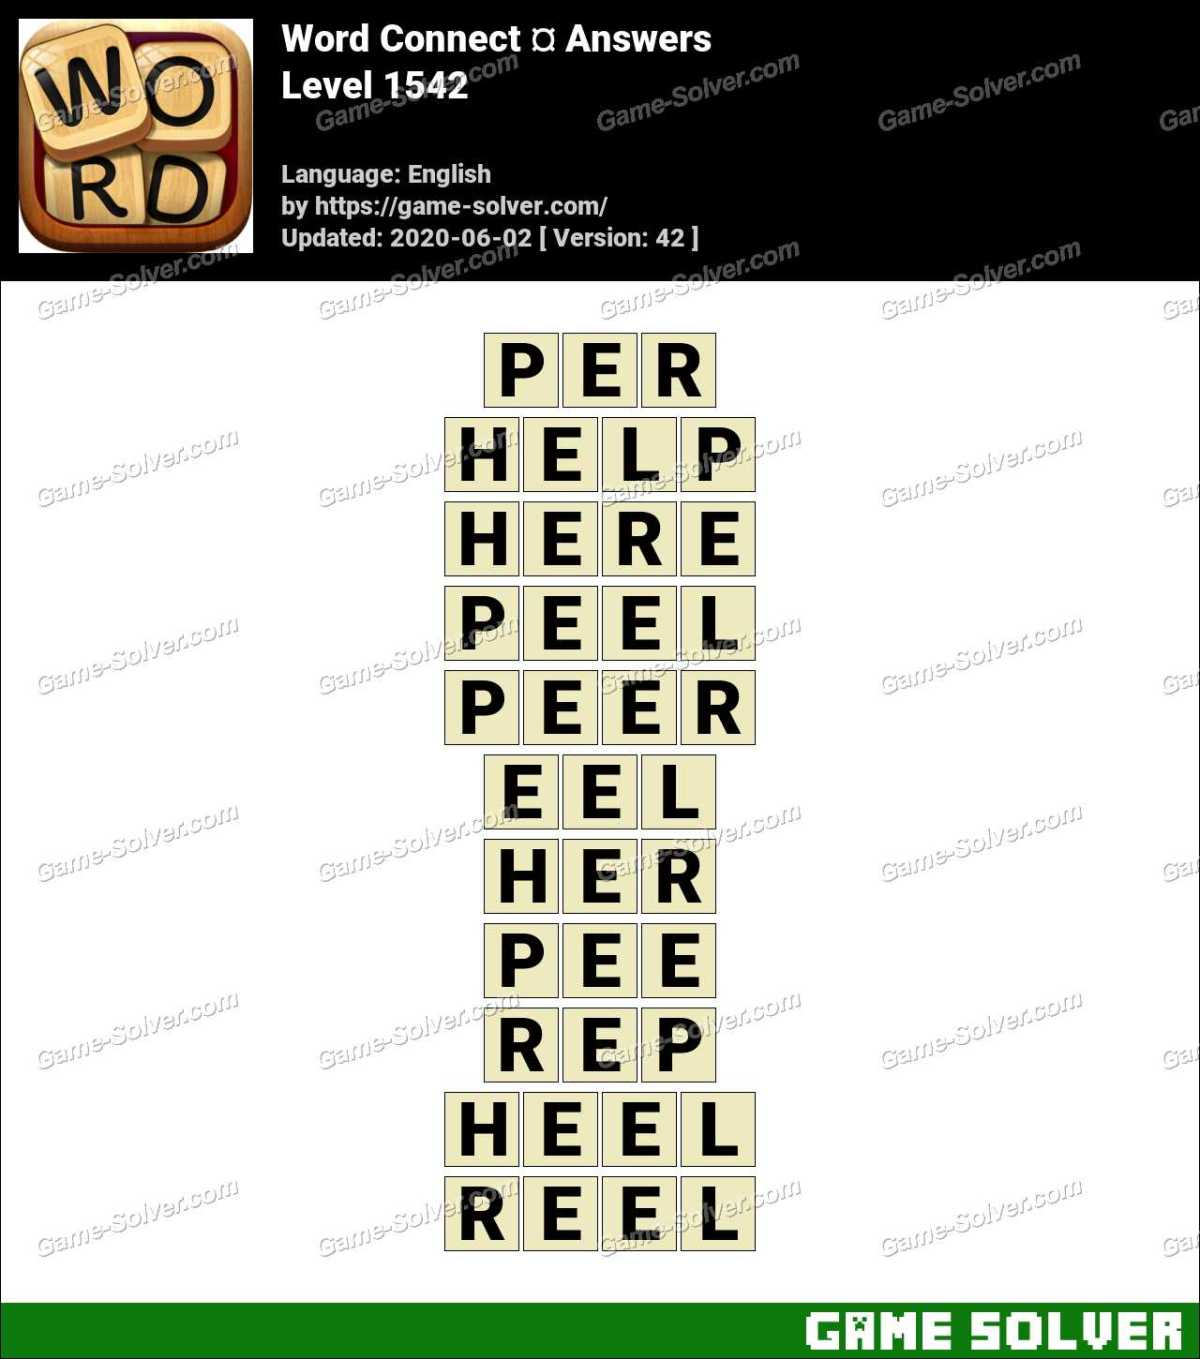 Word Connect Level 1542 Answers